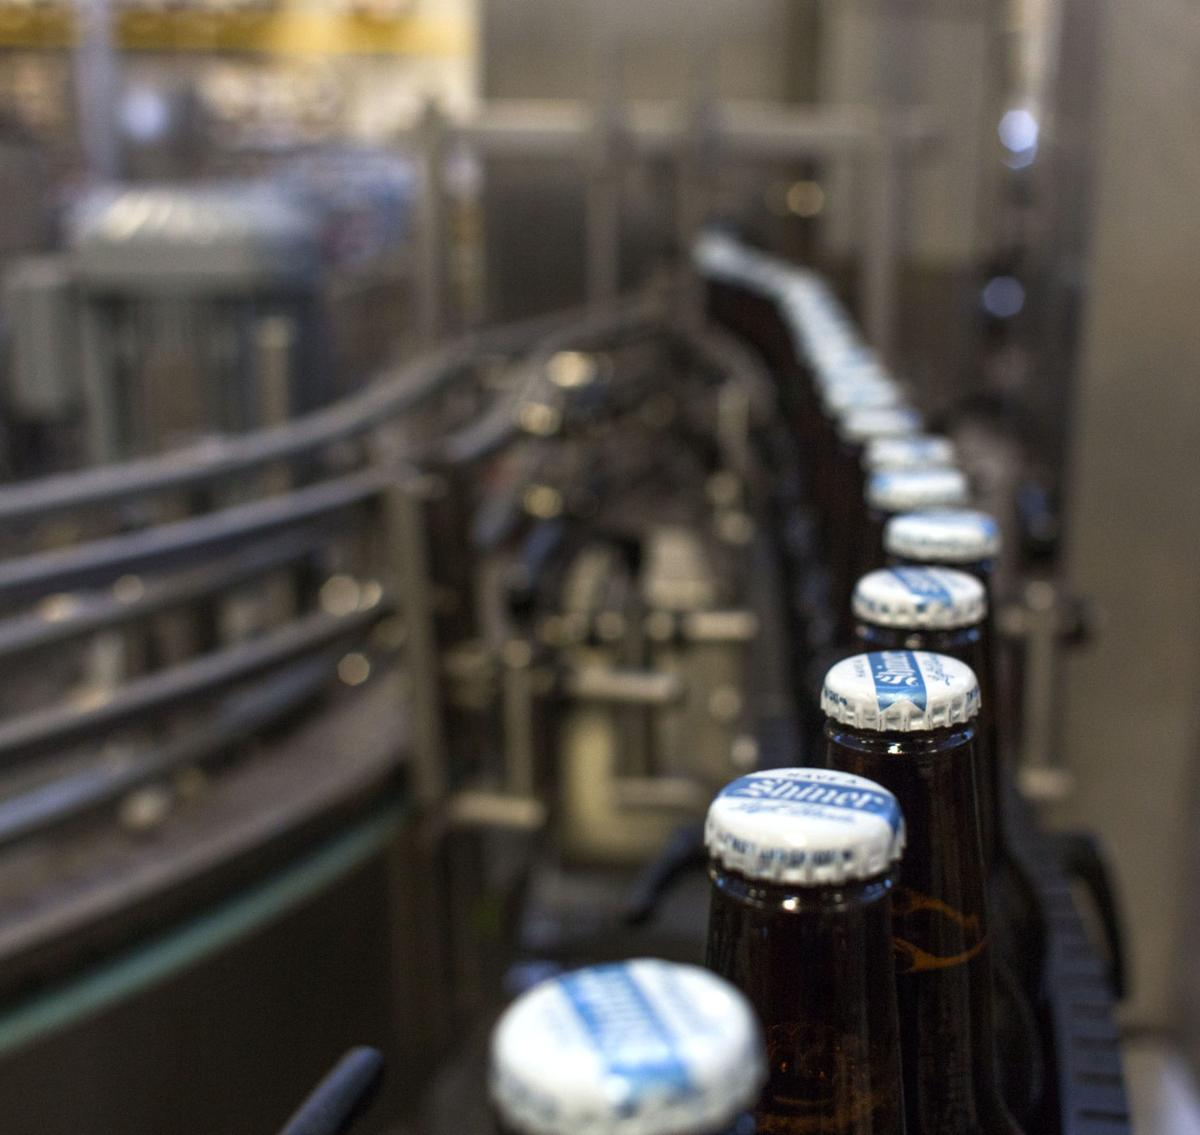 Brewery expansion could mean double the output